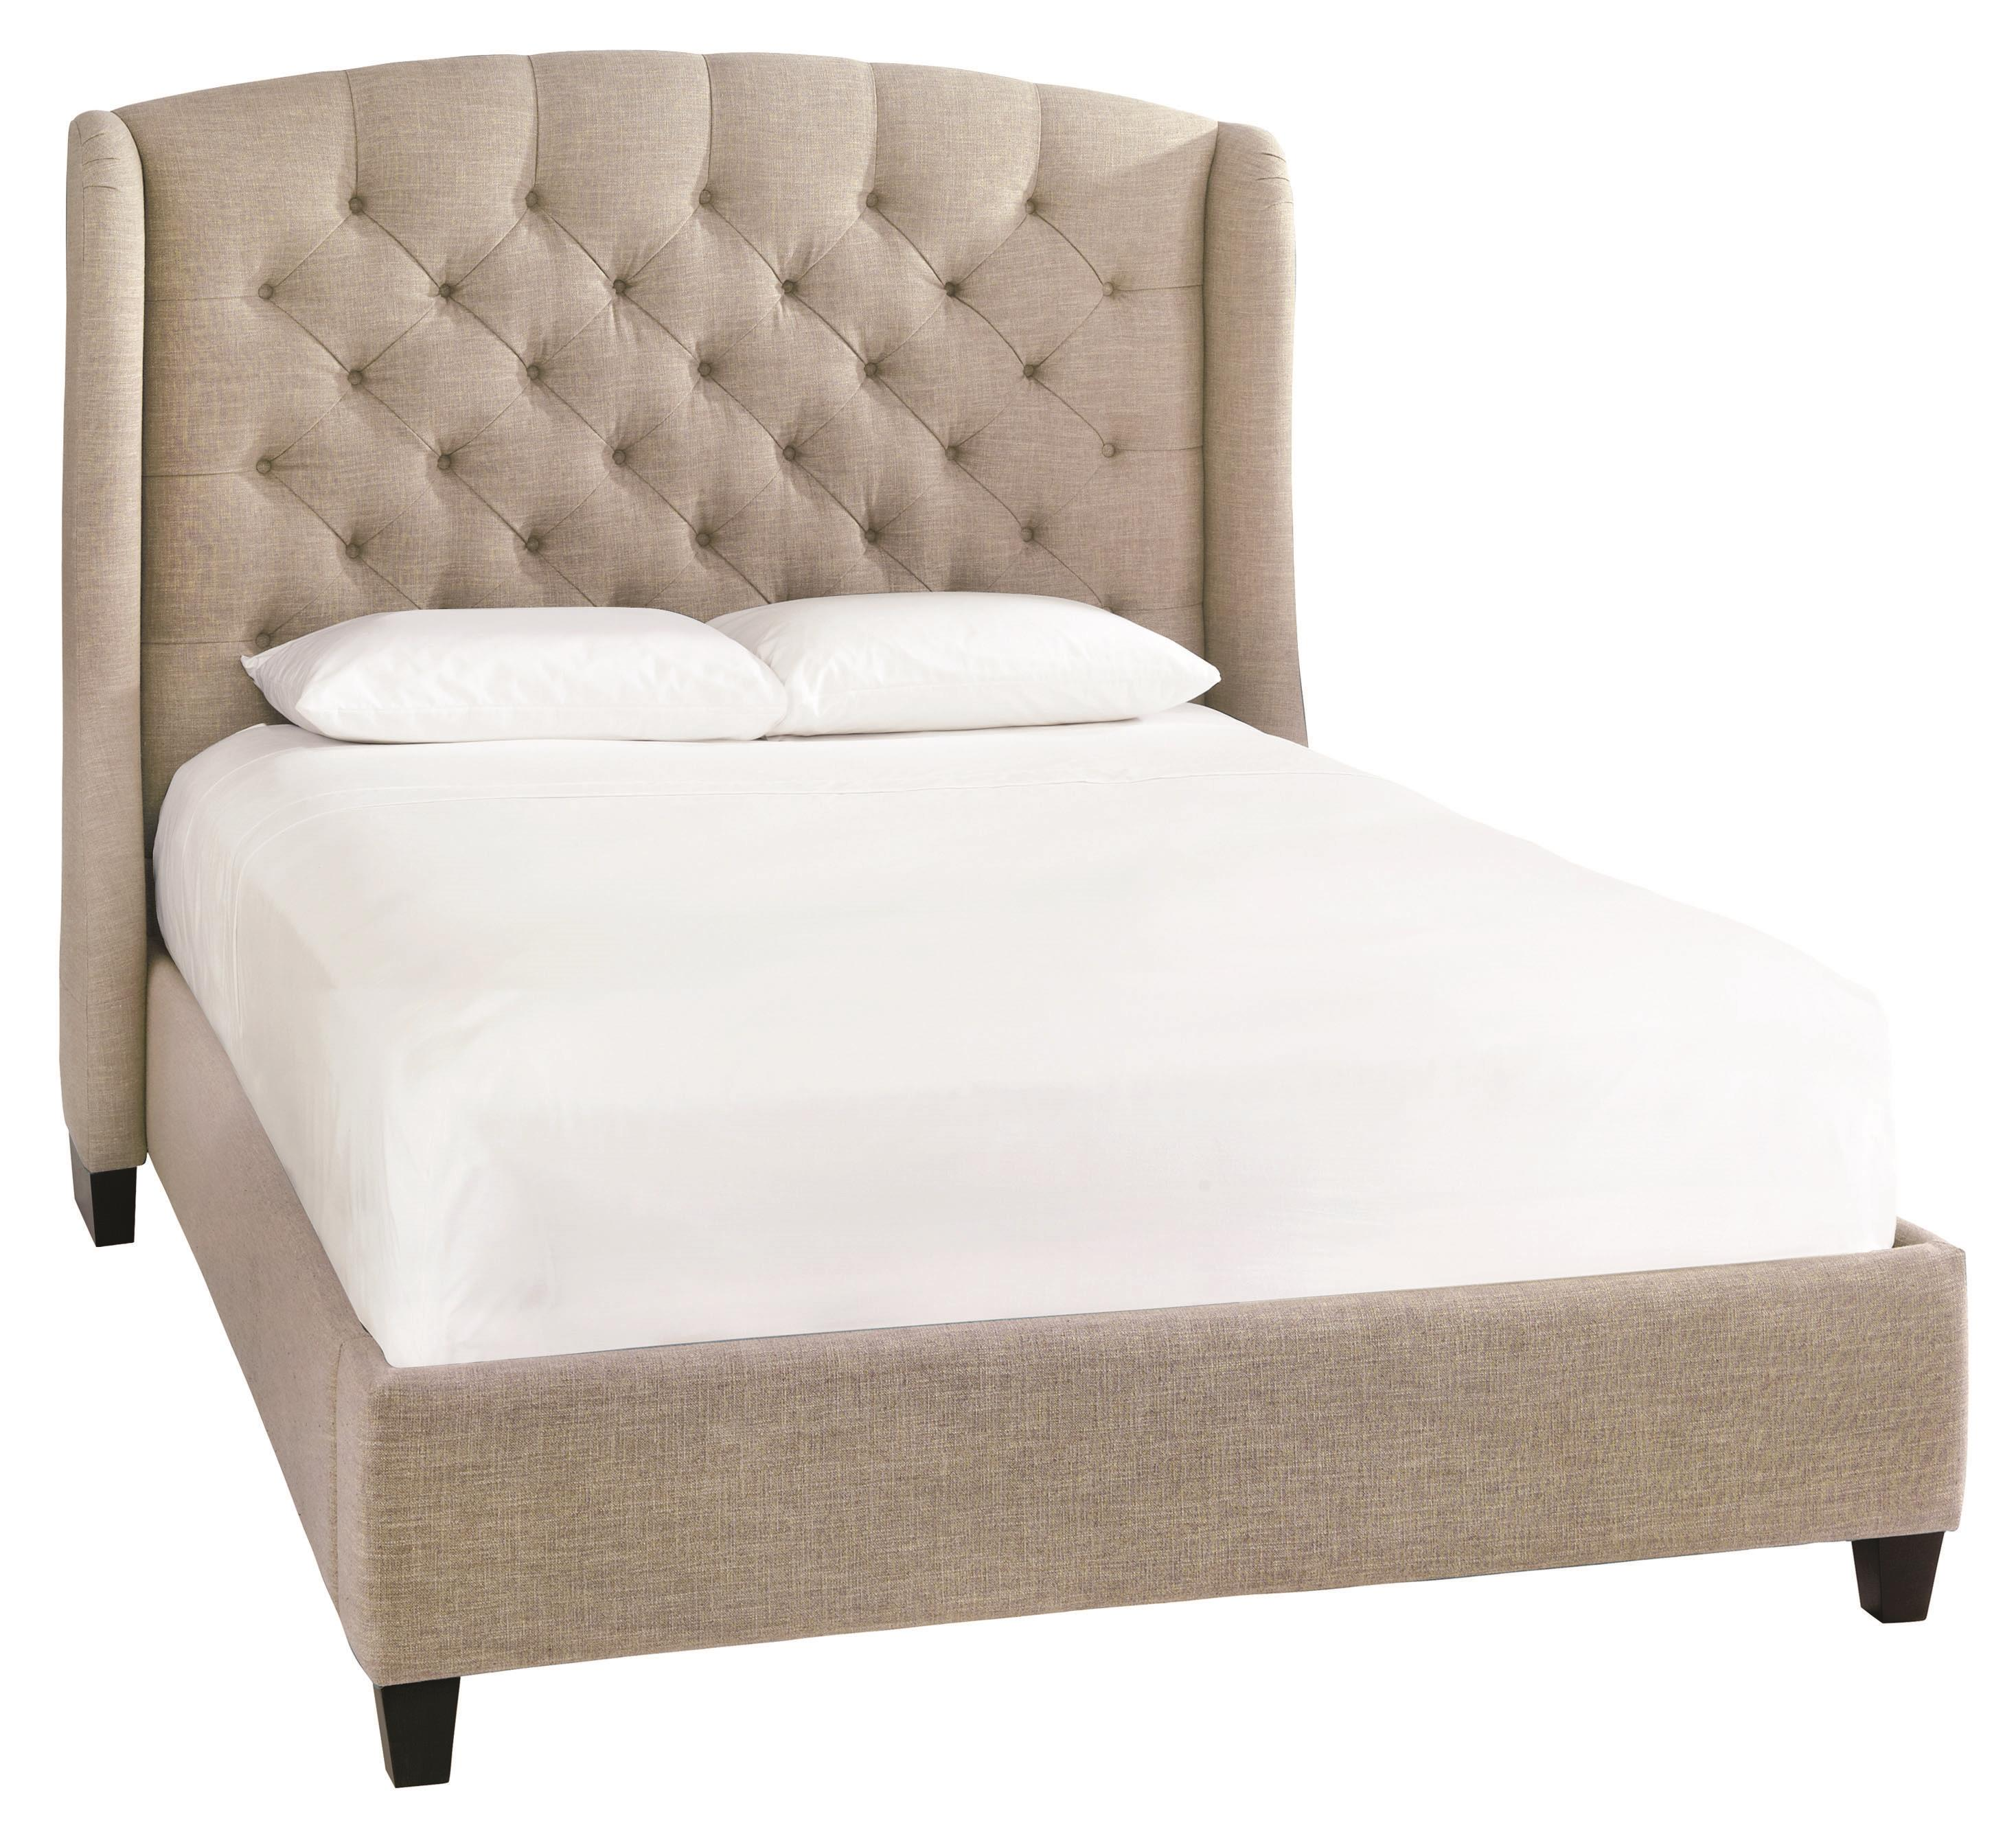 Custom Upholstered Beds Paris King Size Upholstered Bed by Bassett at Suburban Furniture